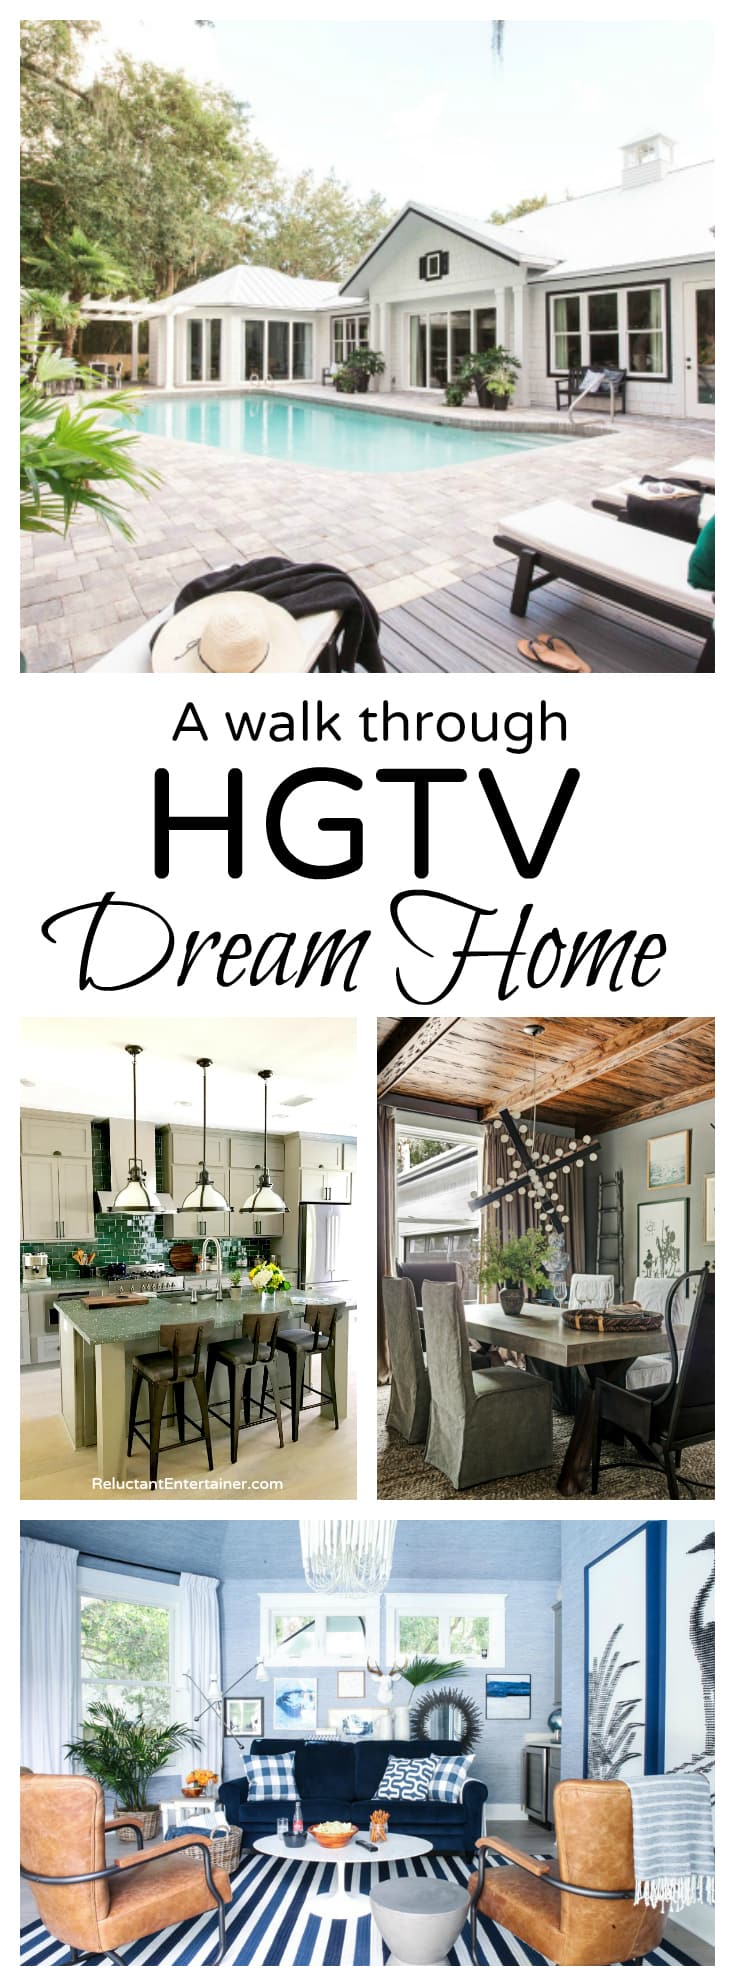 A Walk Through HGTV Dream Home 2017